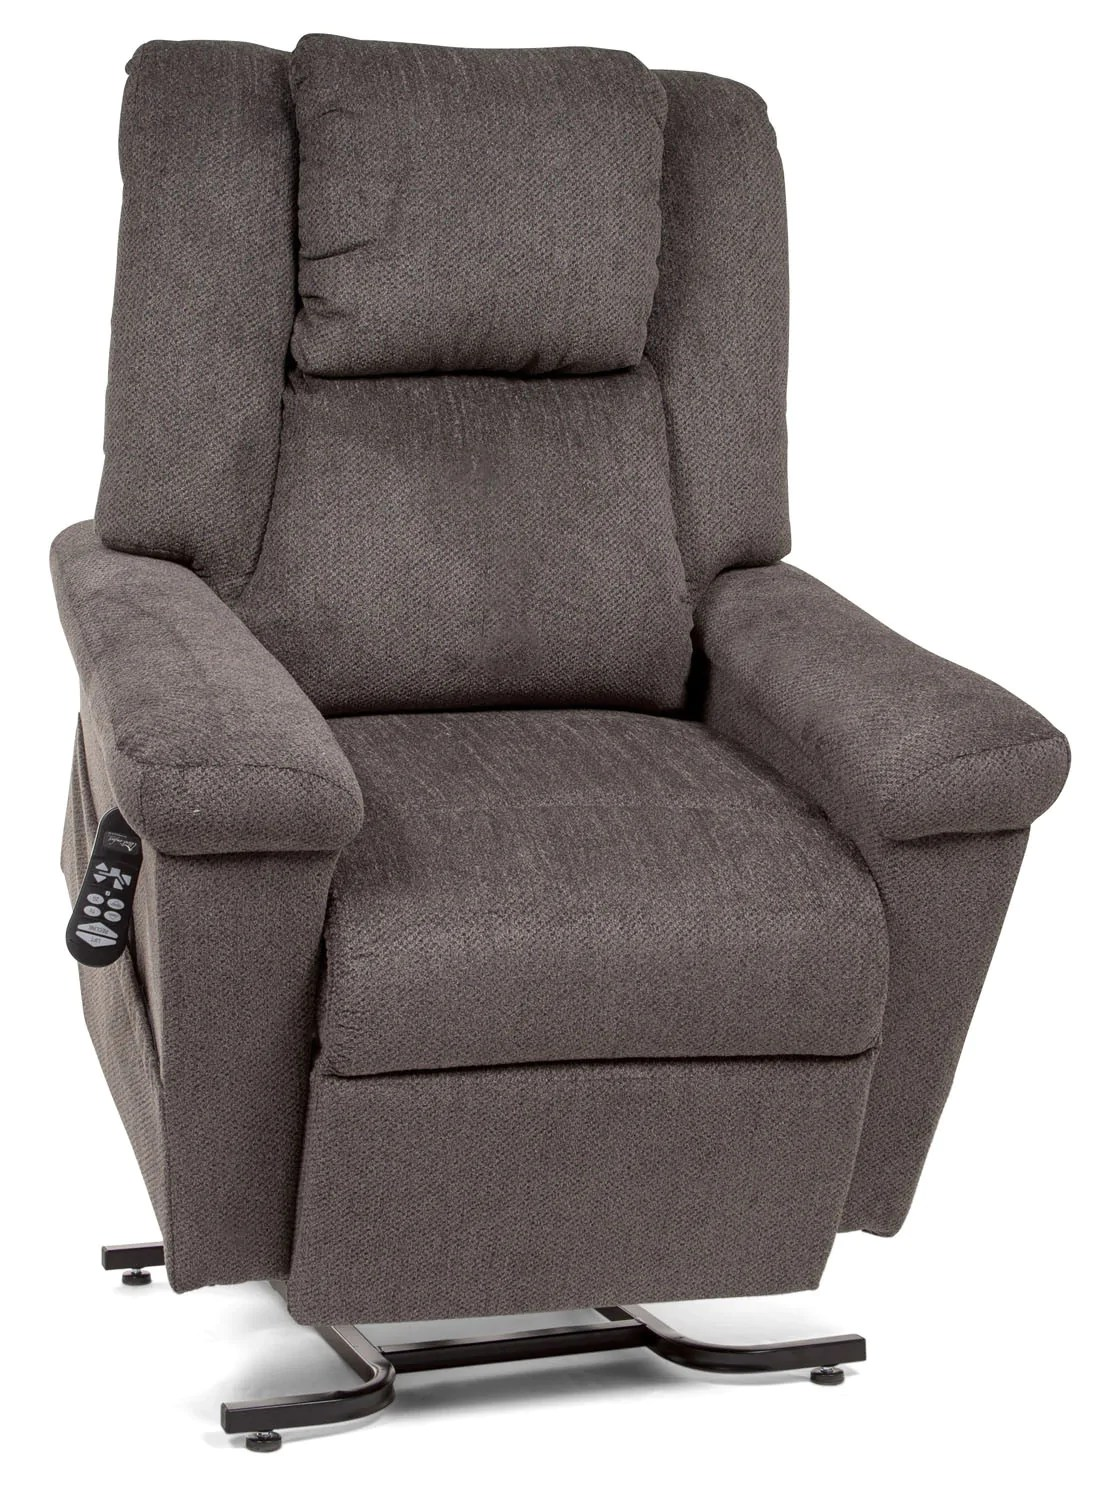 Zero Gravity Lift Chair Zero Gravity Lift Chair Recliner Recliner Electric Lift